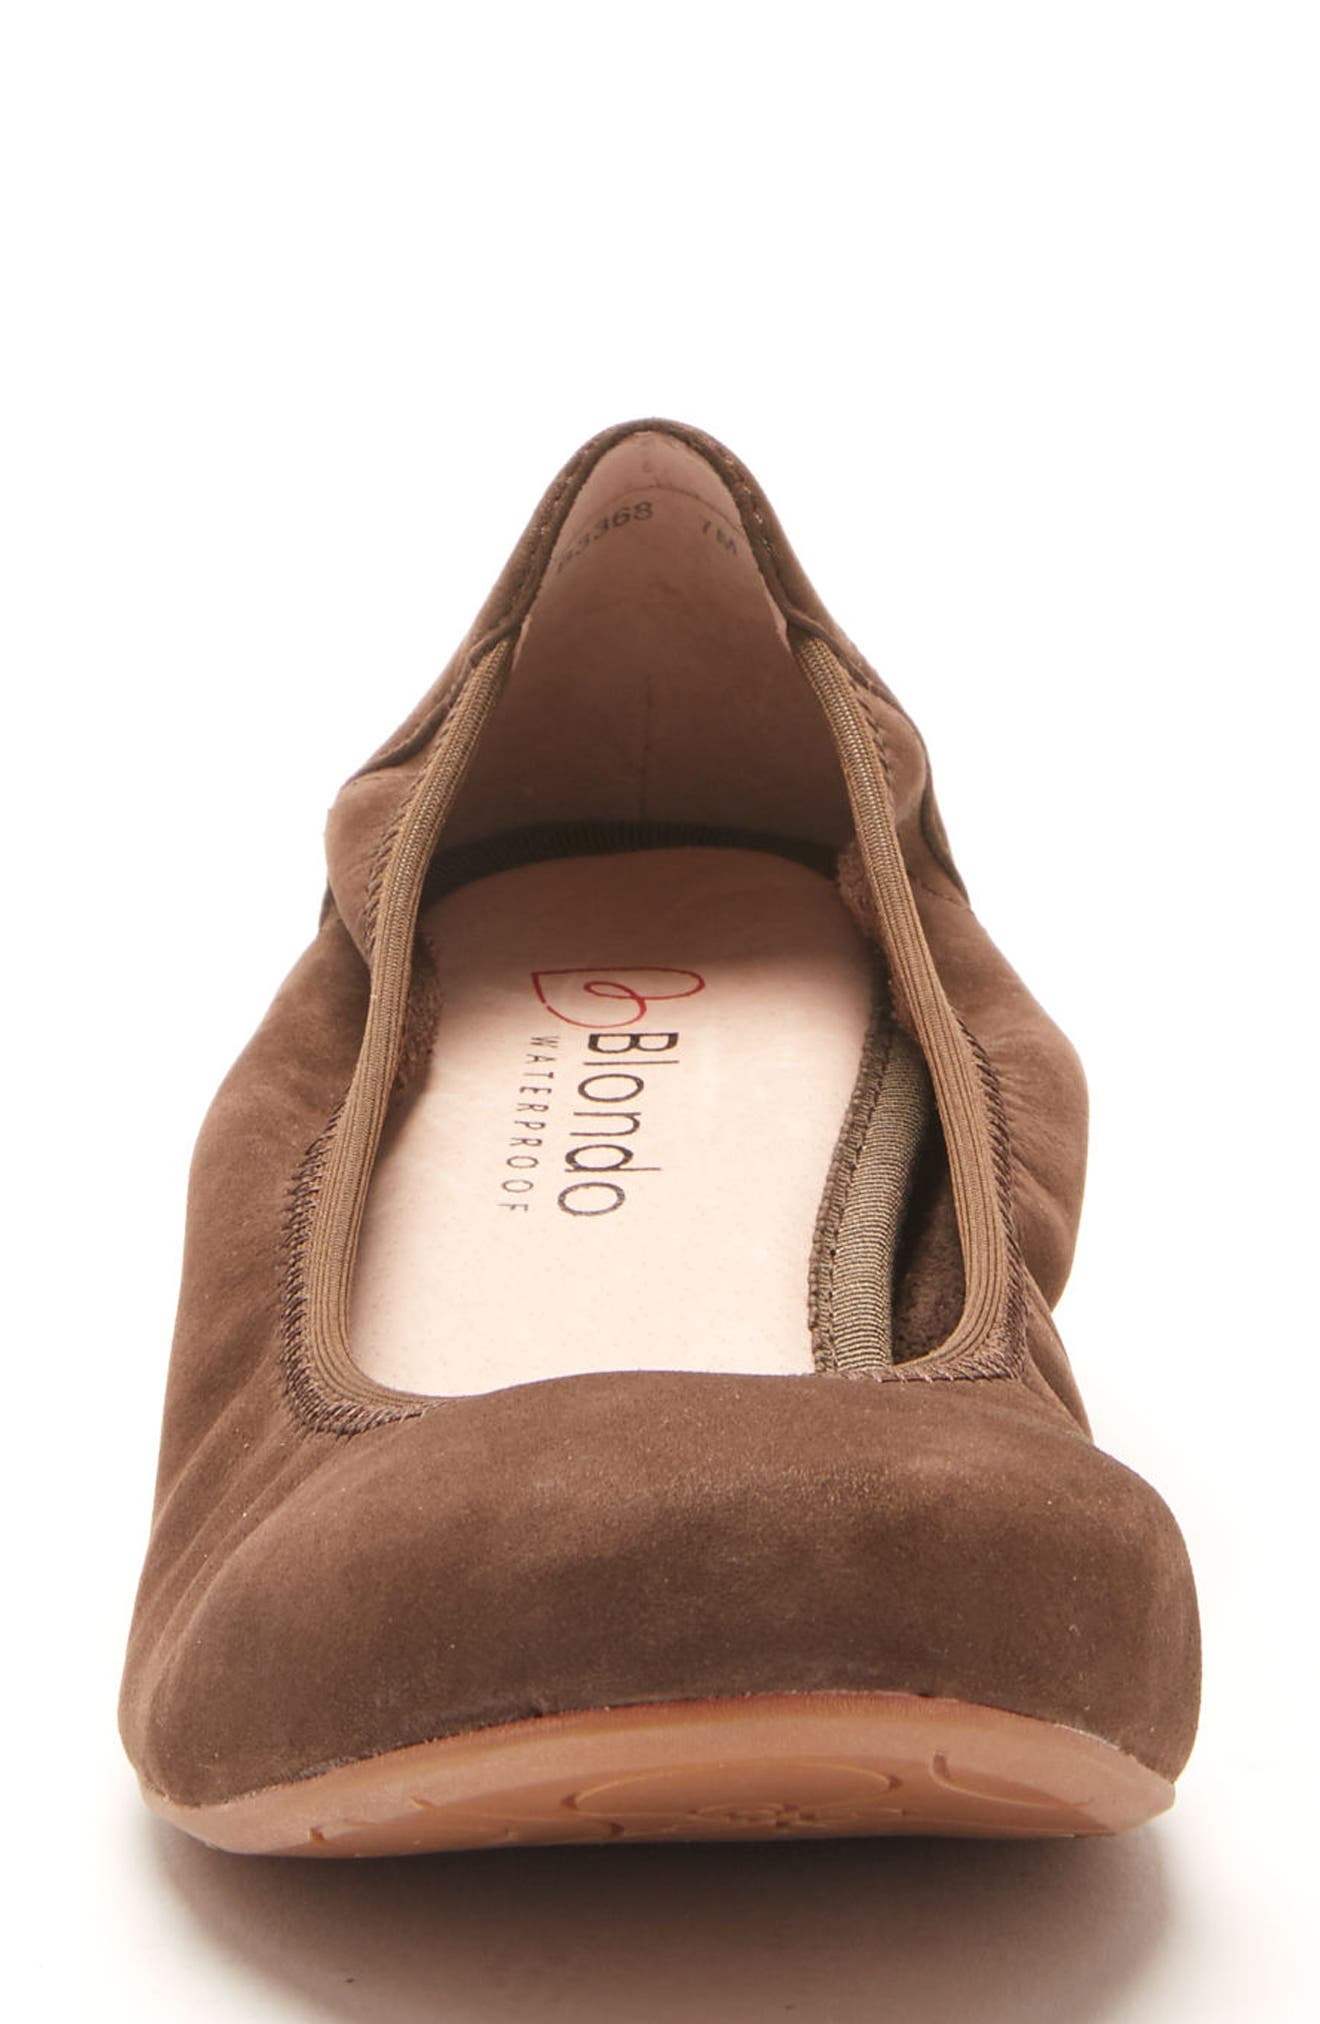 Becca Waterproof Flat,                             Alternate thumbnail 4, color,                             Taupe Nubuck Leather